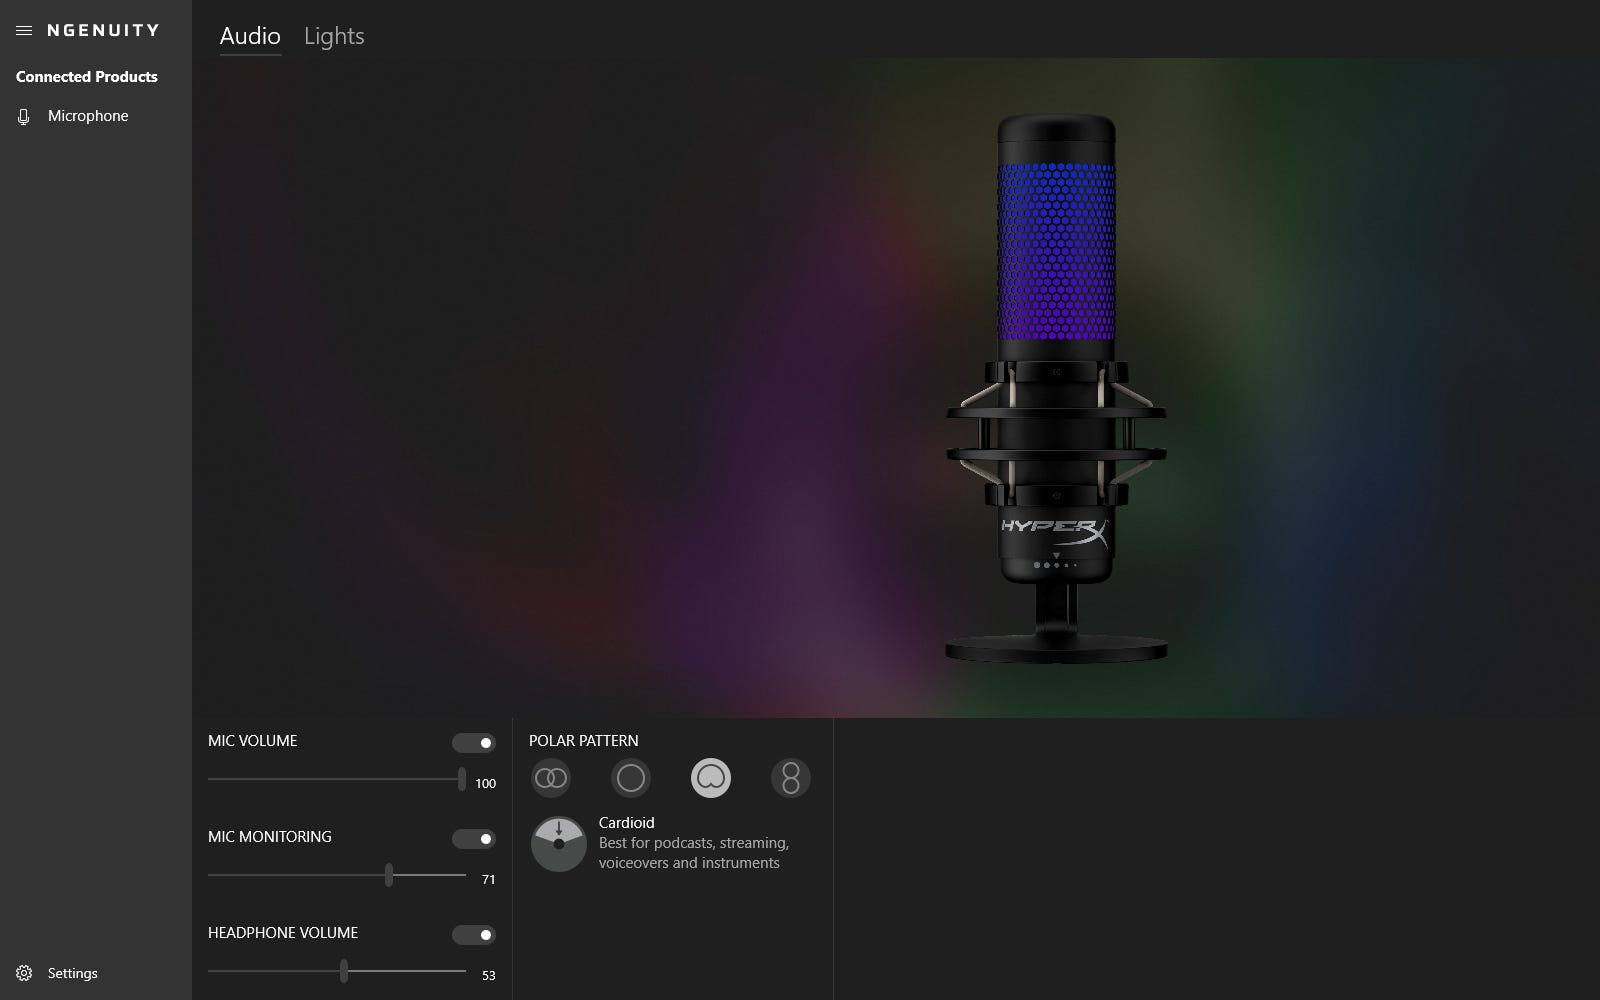 Audio options for the QuadCast S in HyperX NGENUITY